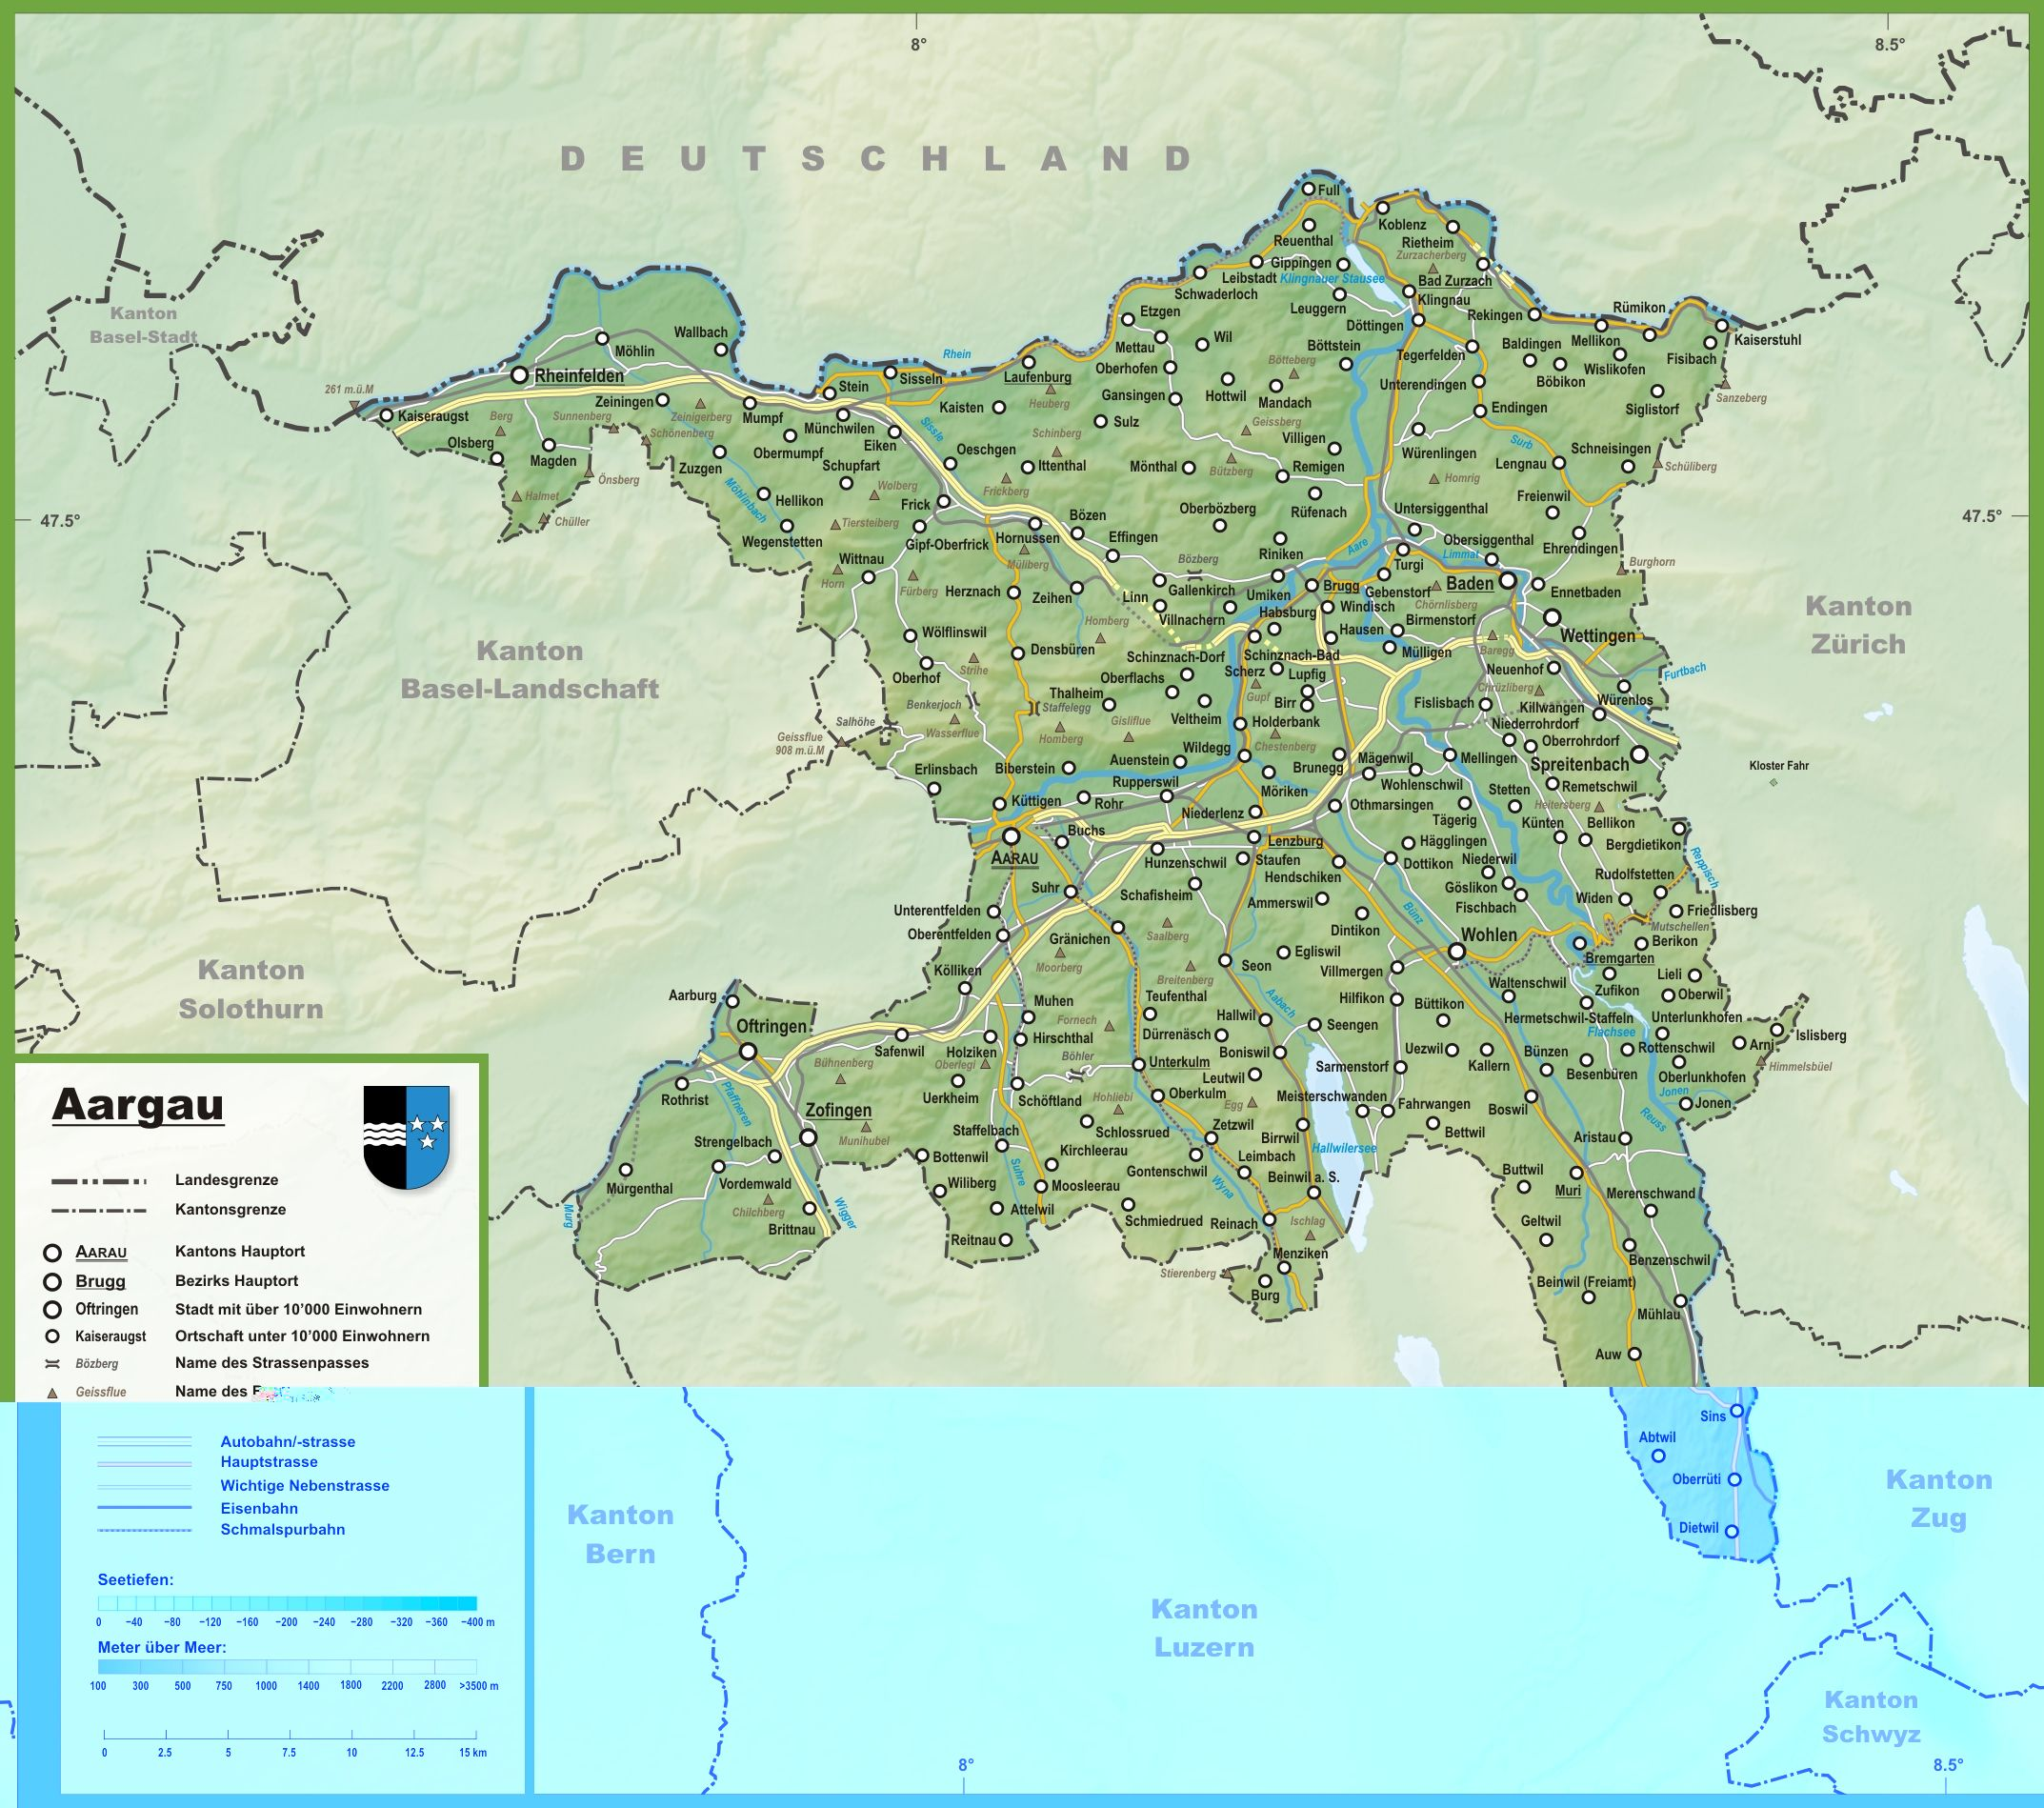 Pin by Jack Ruple on Swiss Cantons | Solothurn, Map, Switzerland